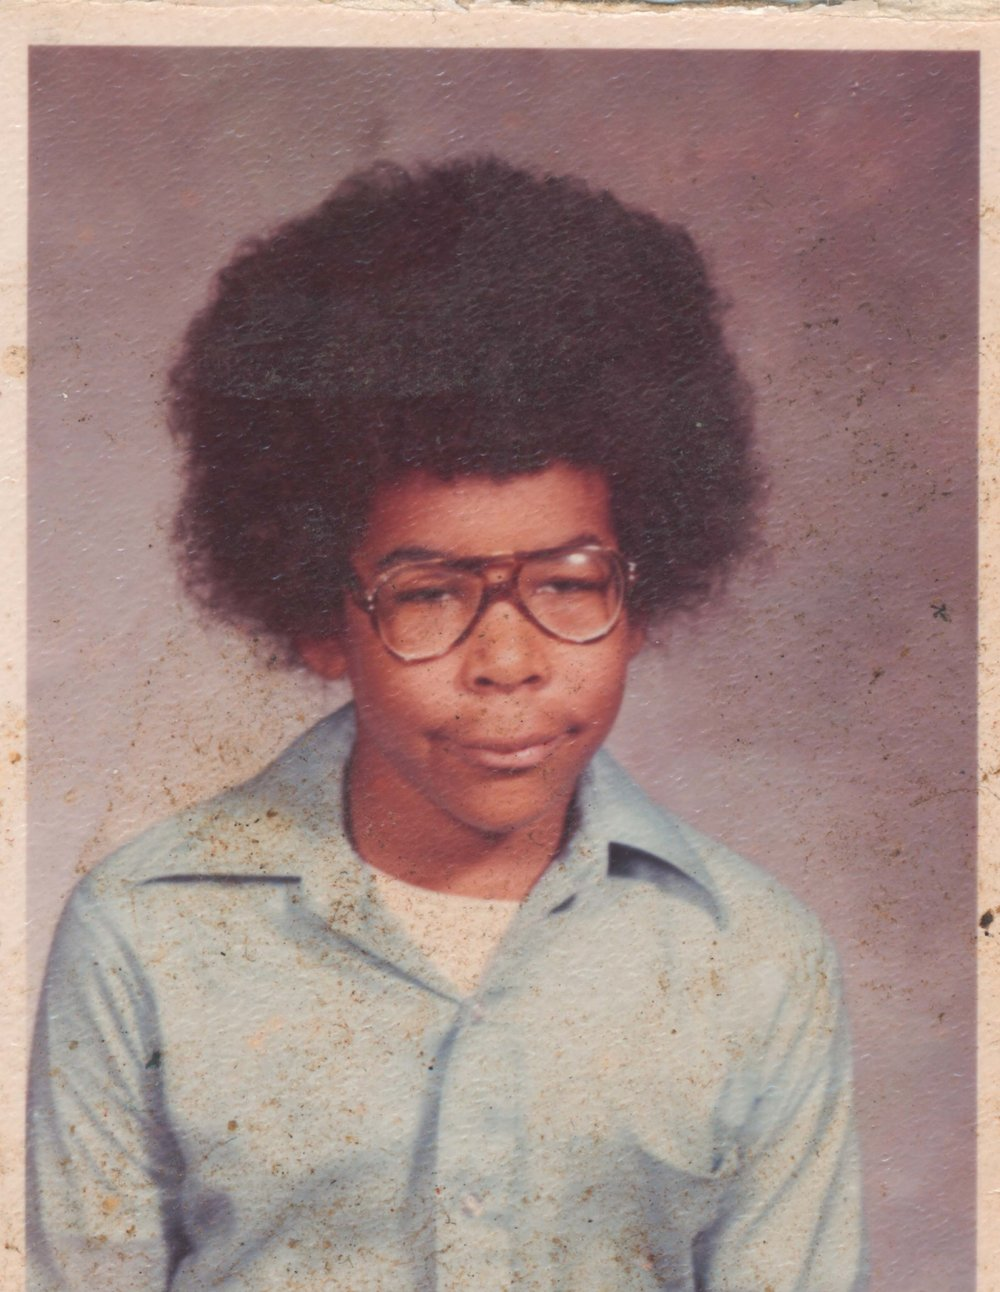 Mississippi  - My 4th grade school picture from Ward Elementary School in Starkville, Mississippi.